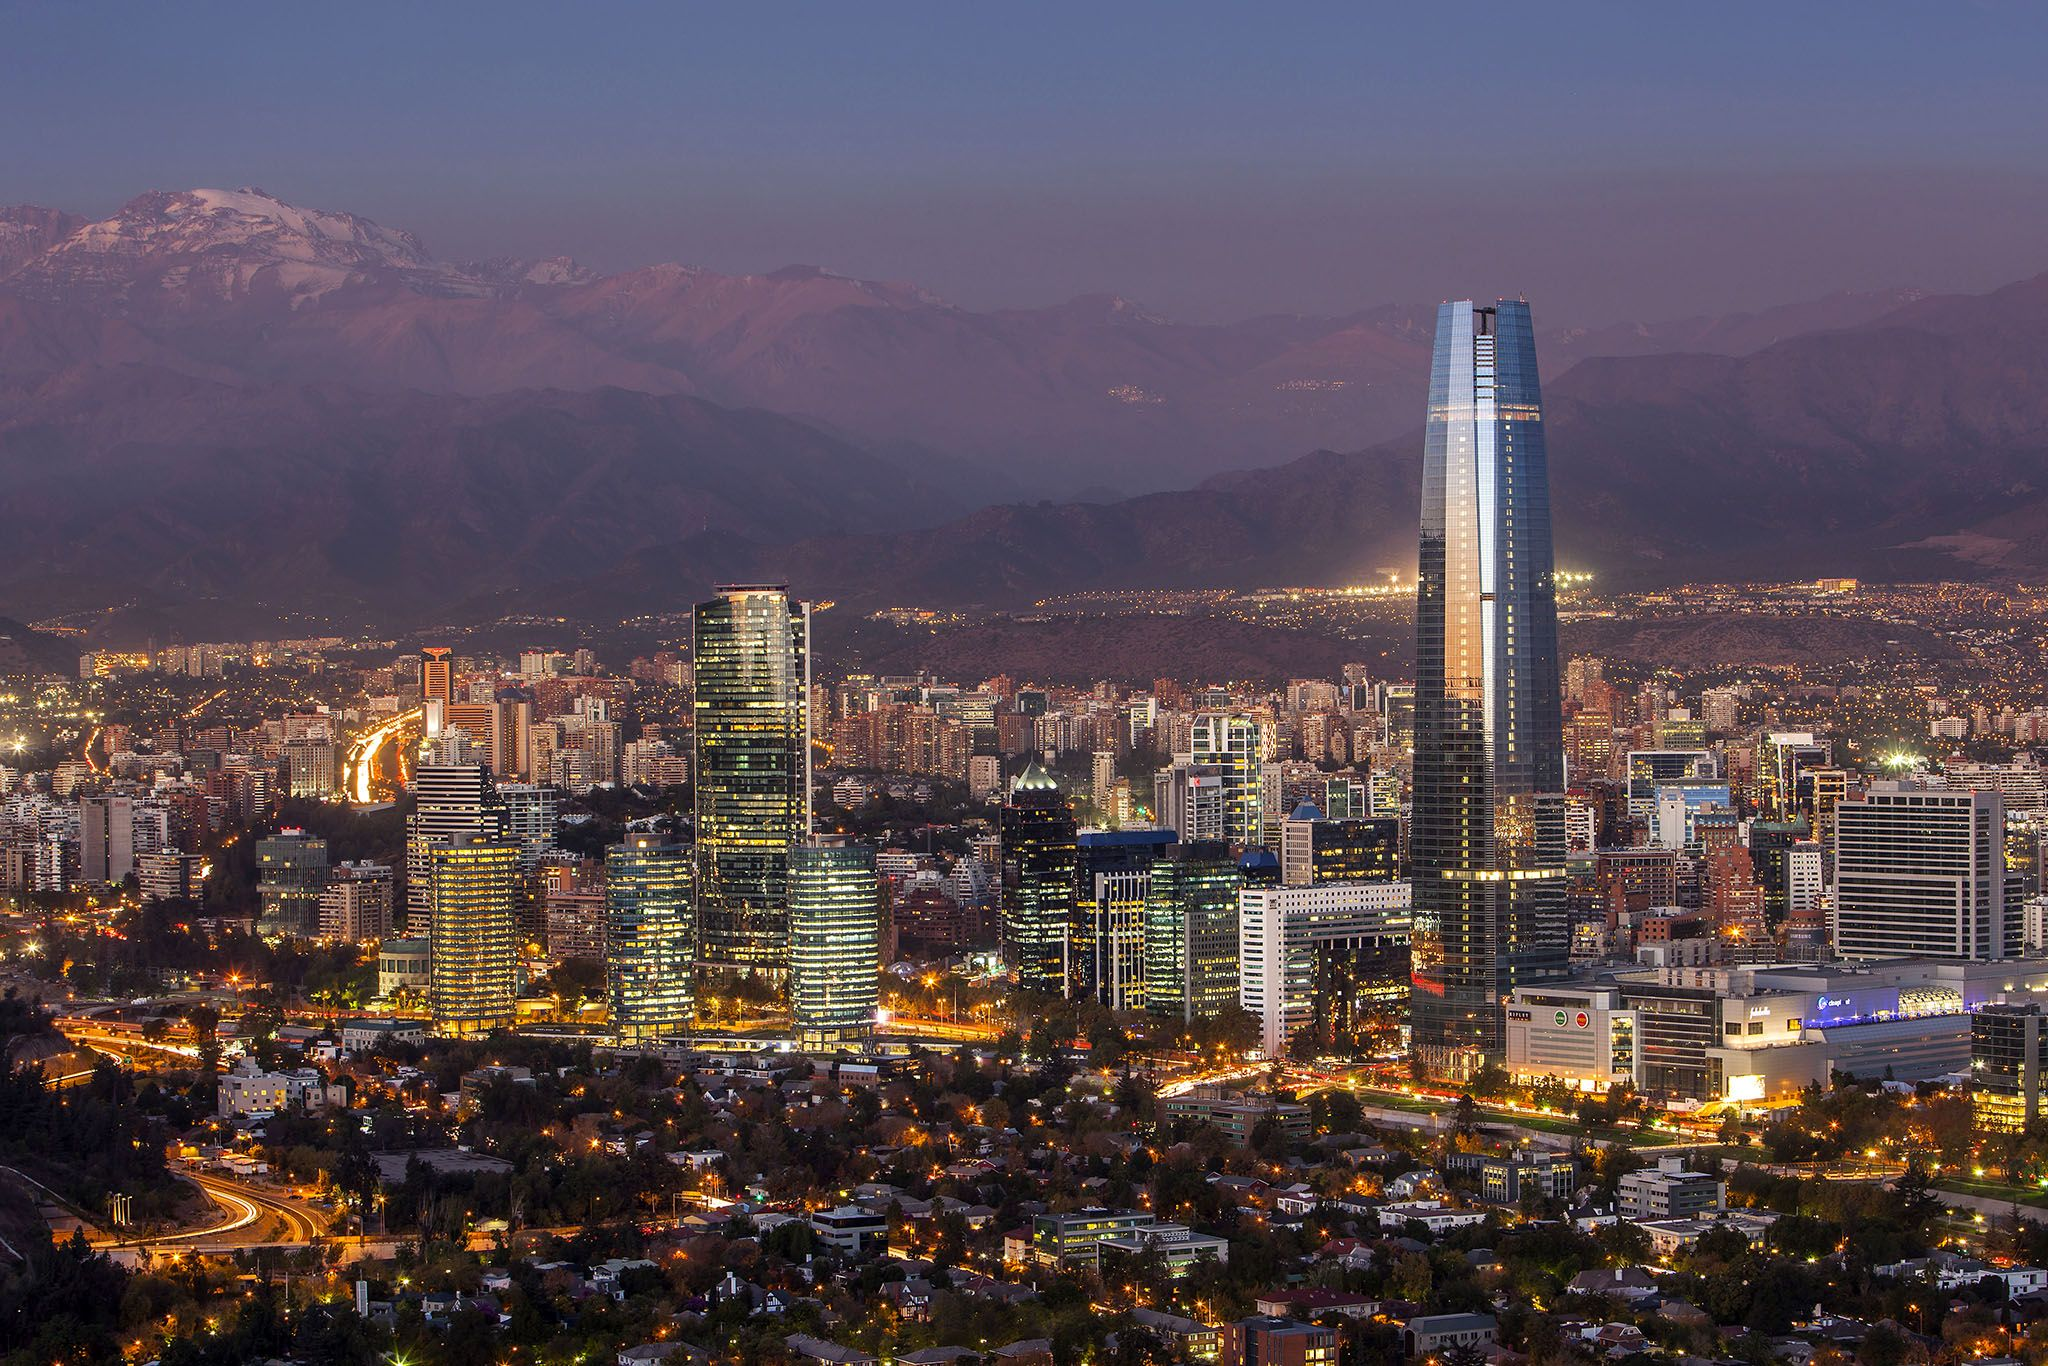 Home to modern skyscrapers and historic colonial architecture, Santiago offers visitors the chance to step between past and present just by crossing the street.